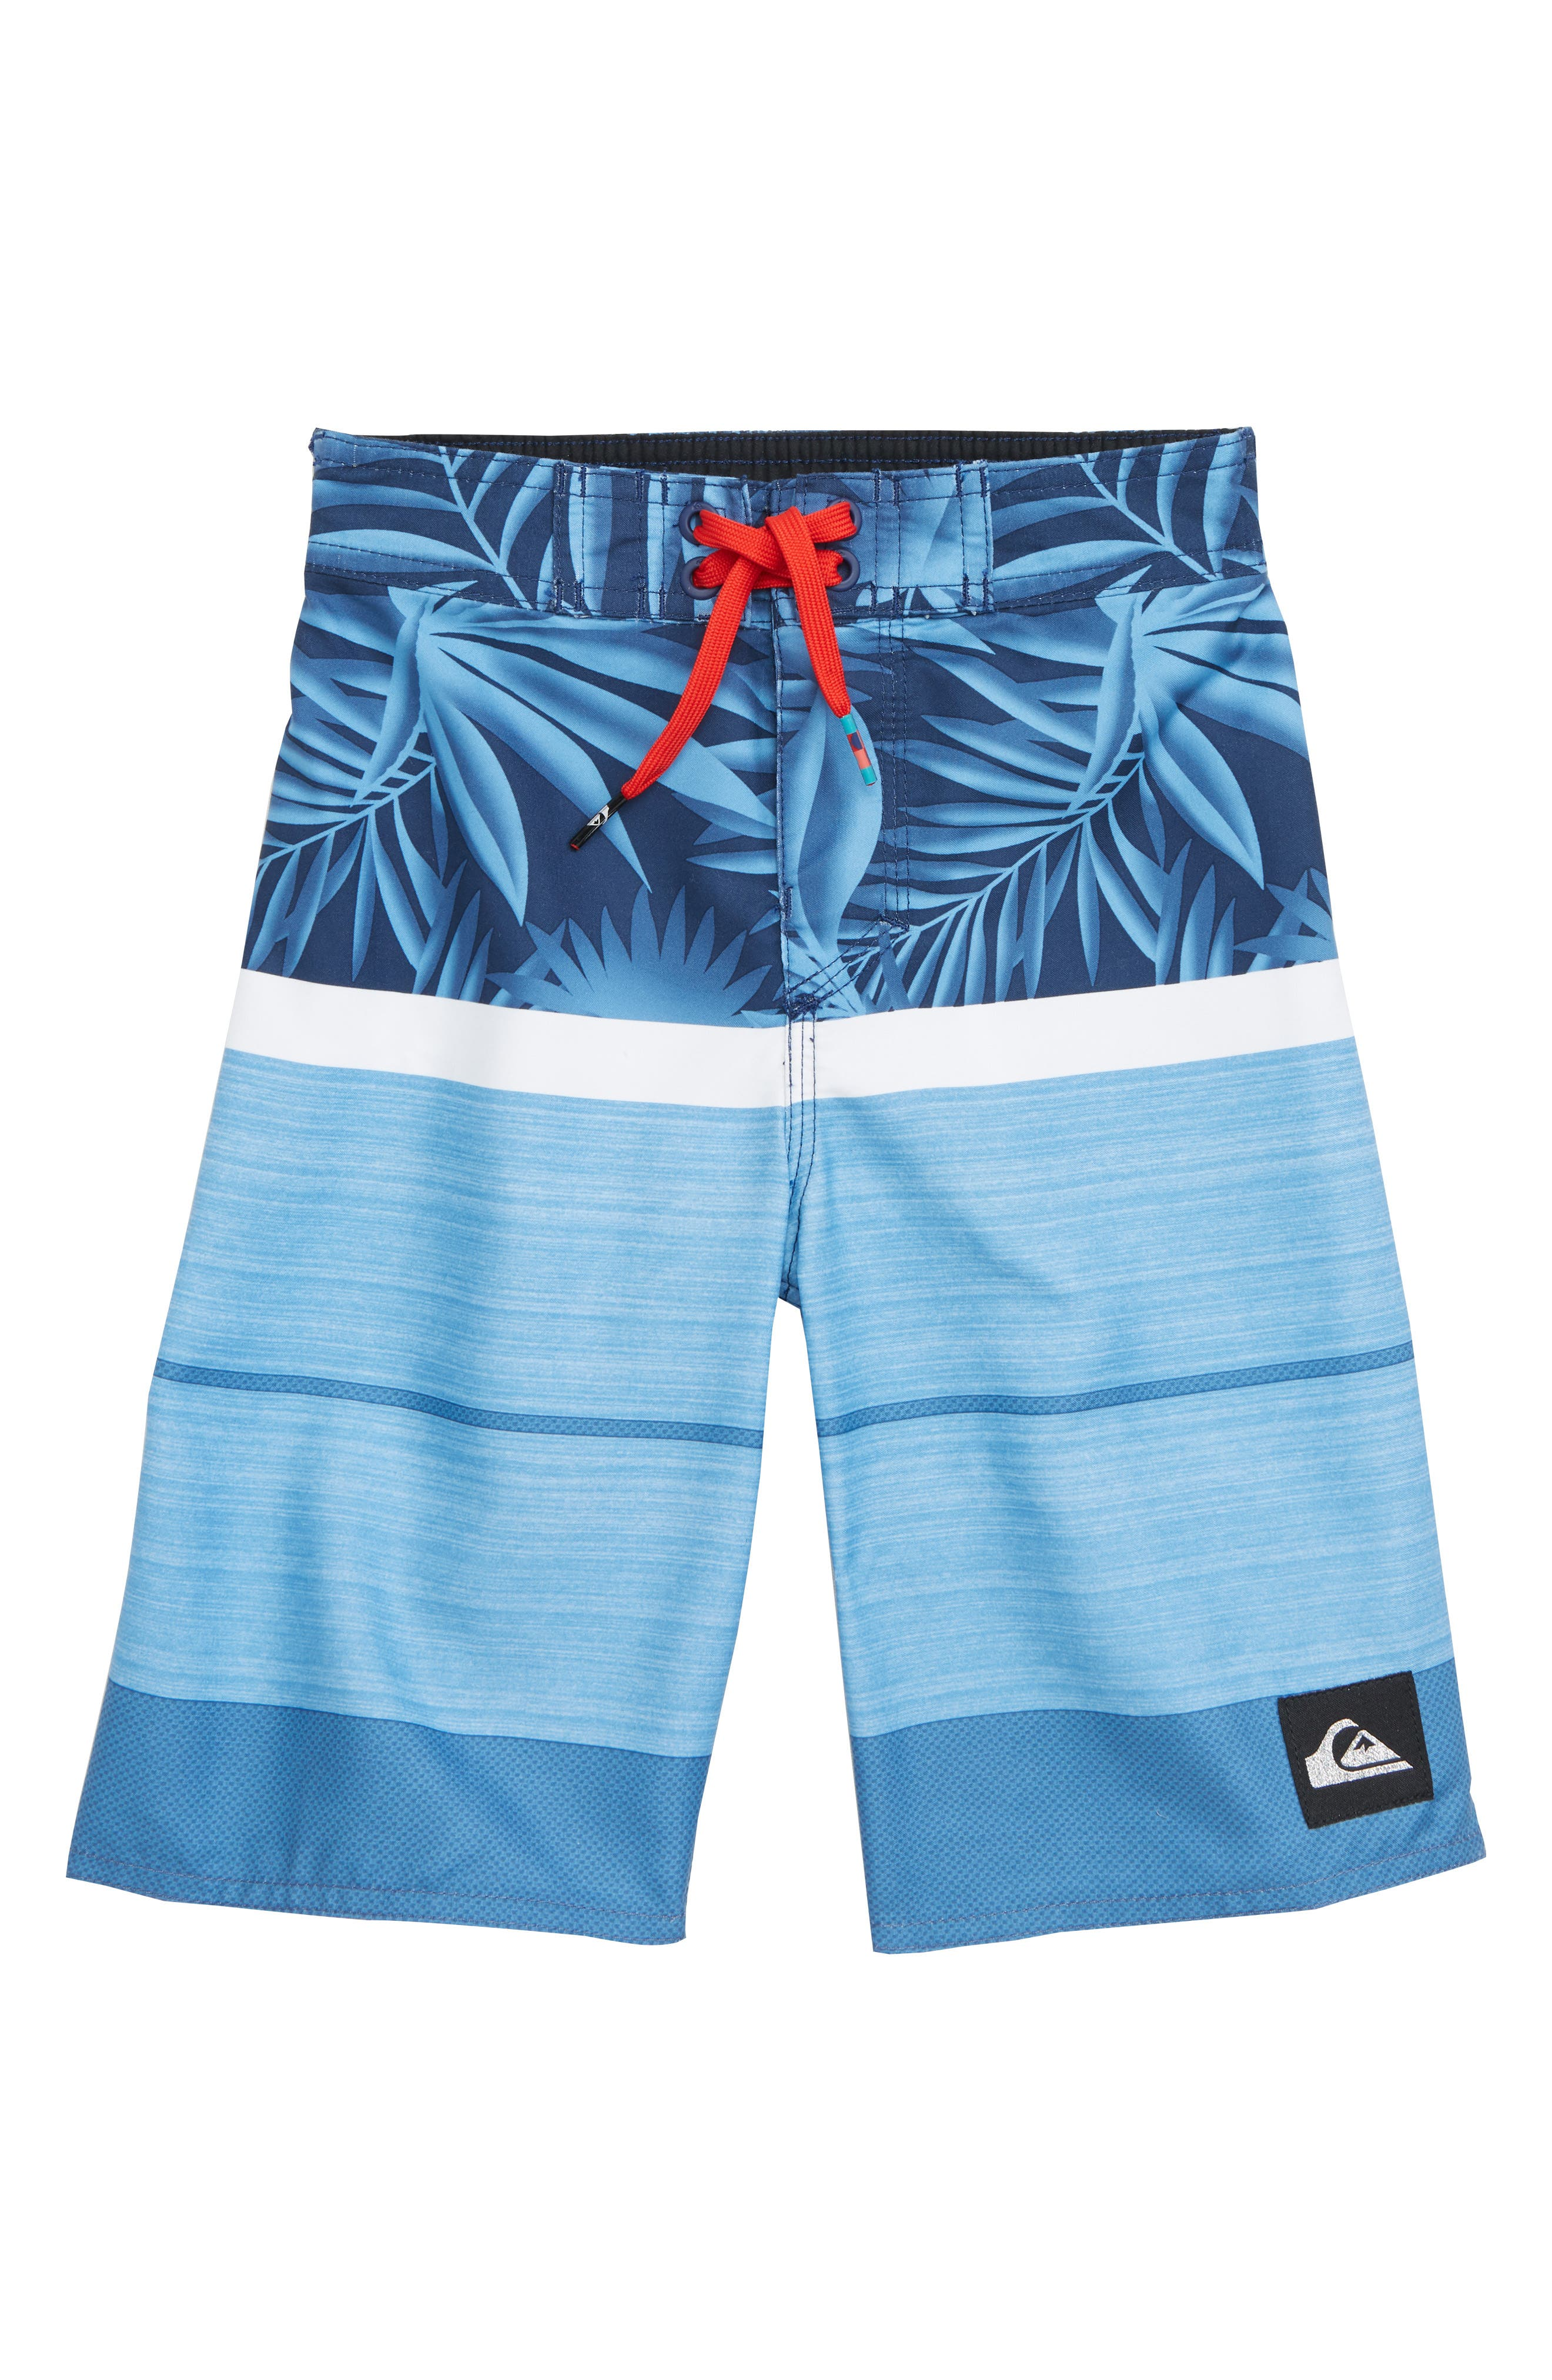 Slab Island Board Shorts,                         Main,                         color, MEDIEVEL BLUE